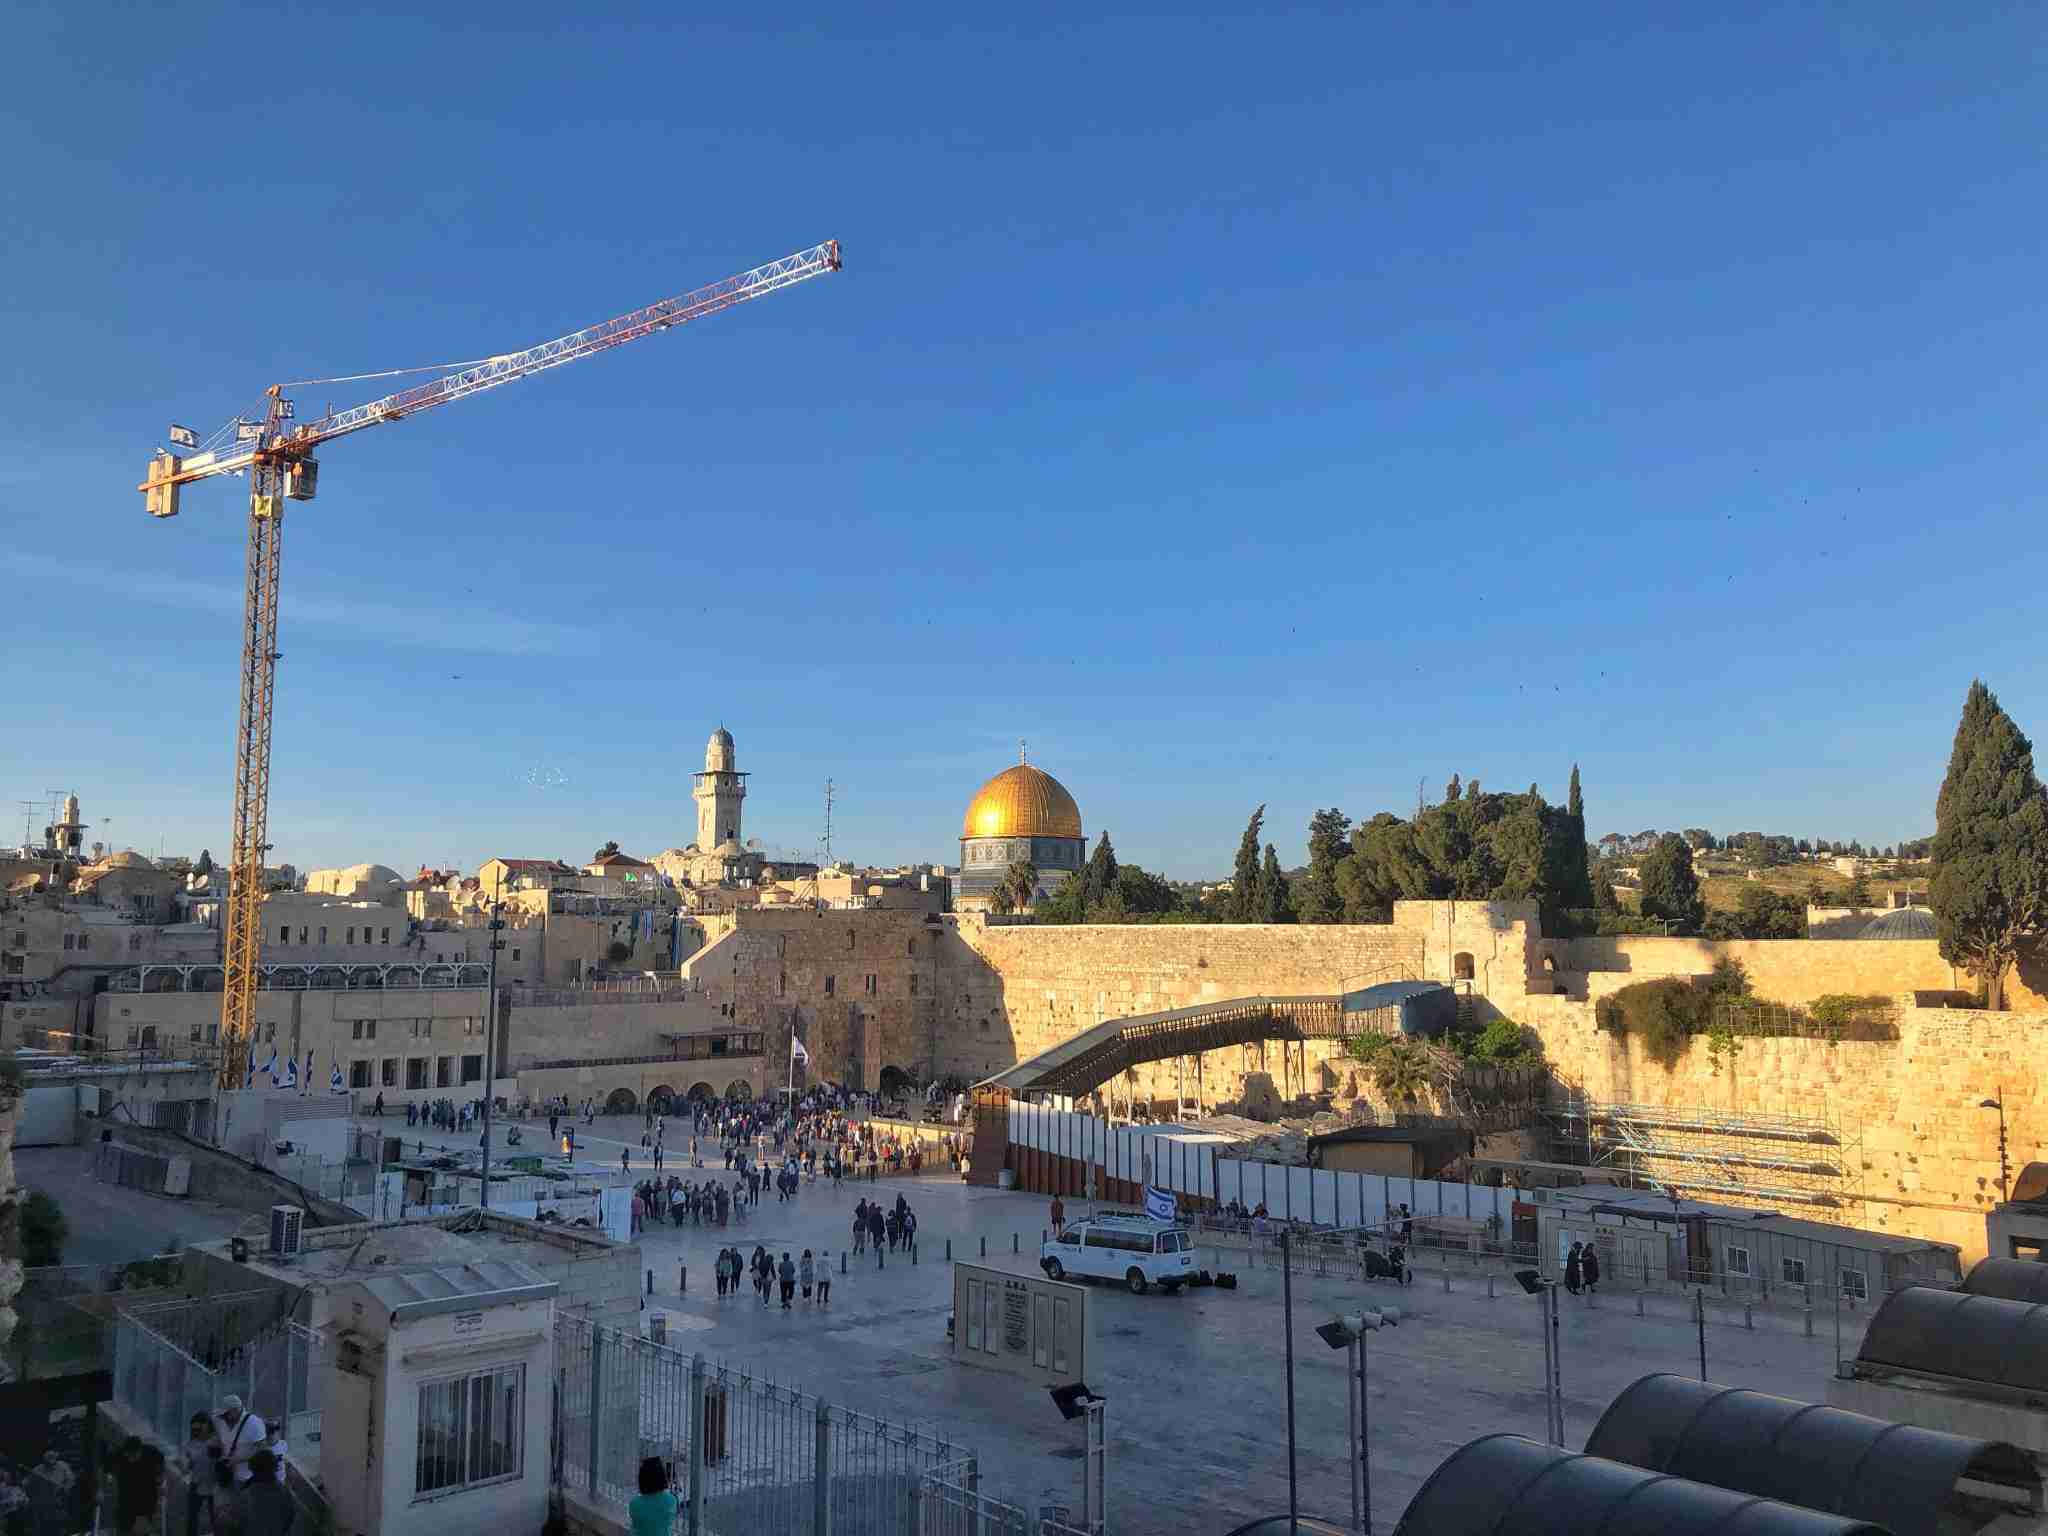 Jerusalem. Photo by Lori Zaino.